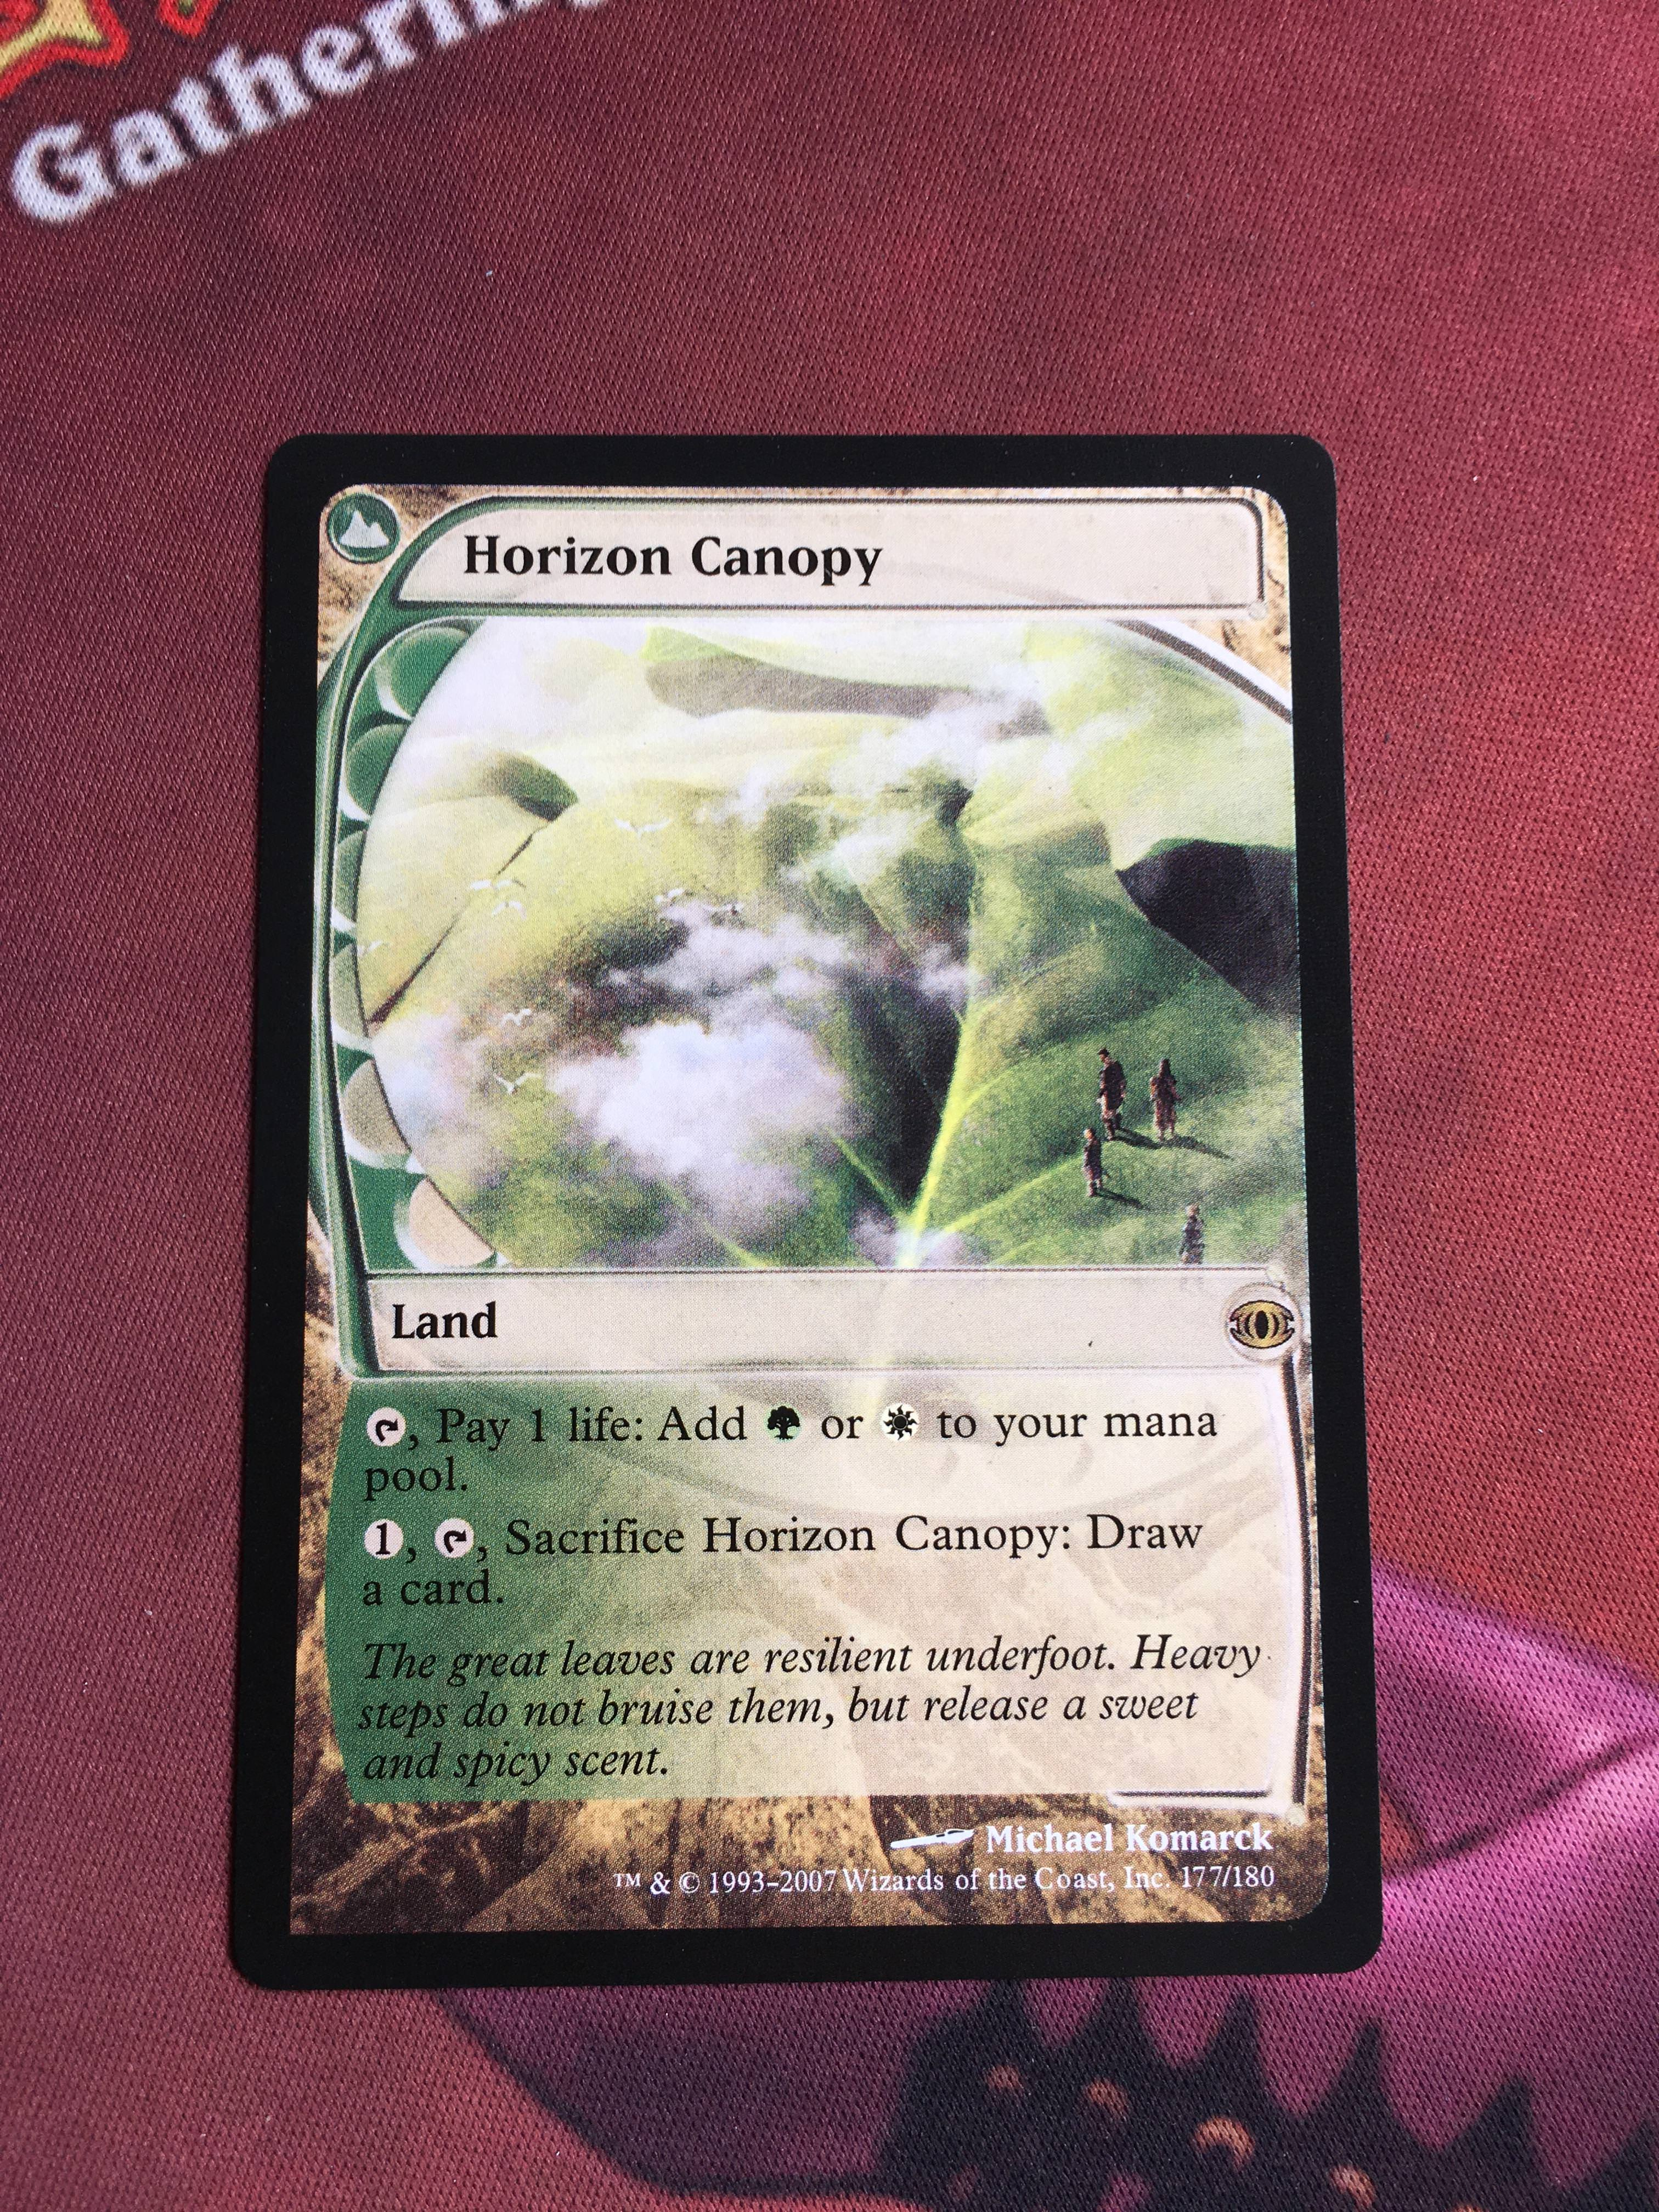 Horizon Canopy Future Sight Magician ProxyKing 8.0 VIP The Proxy Cards To Gathering Every Single Mg Card.